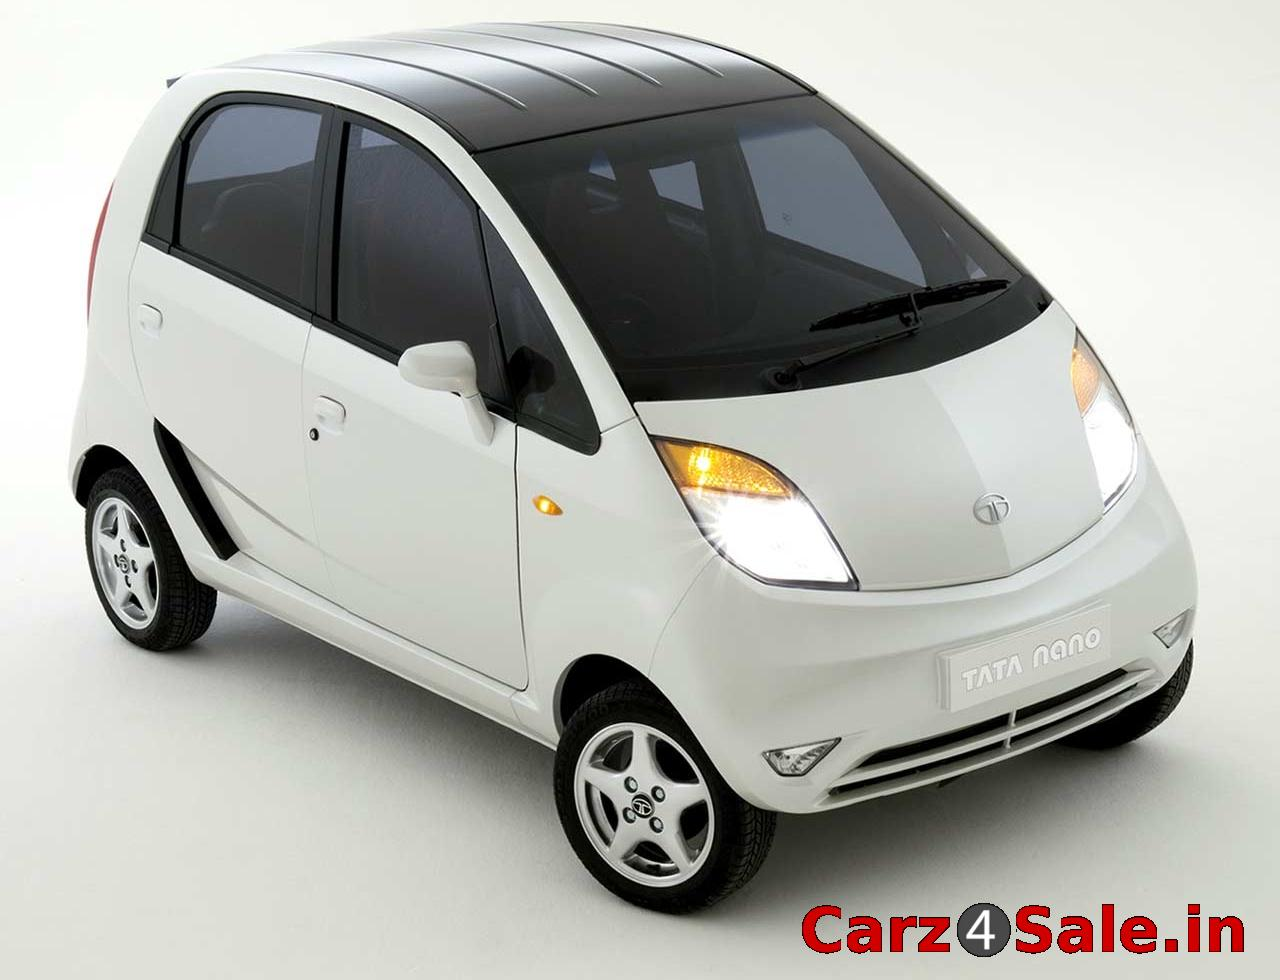 Tata Nano Diesel Caught Testing In Pune Carz4sale